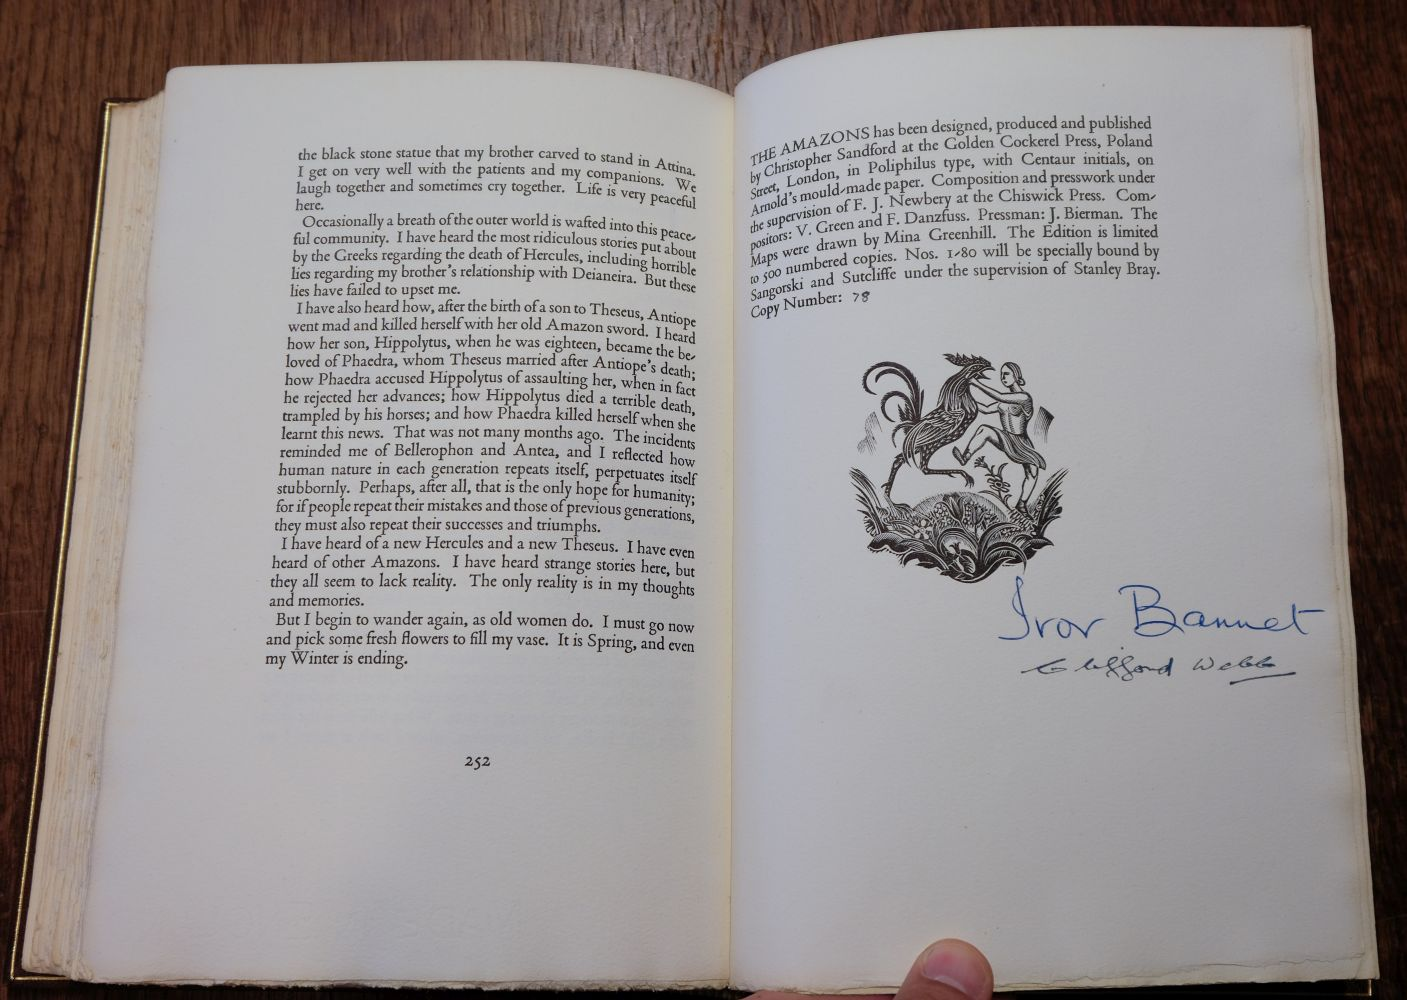 Golden Cockerel Press. The Amazons, A Novel by Ivor Bannet, 1948, signed in special binding - Image 7 of 8